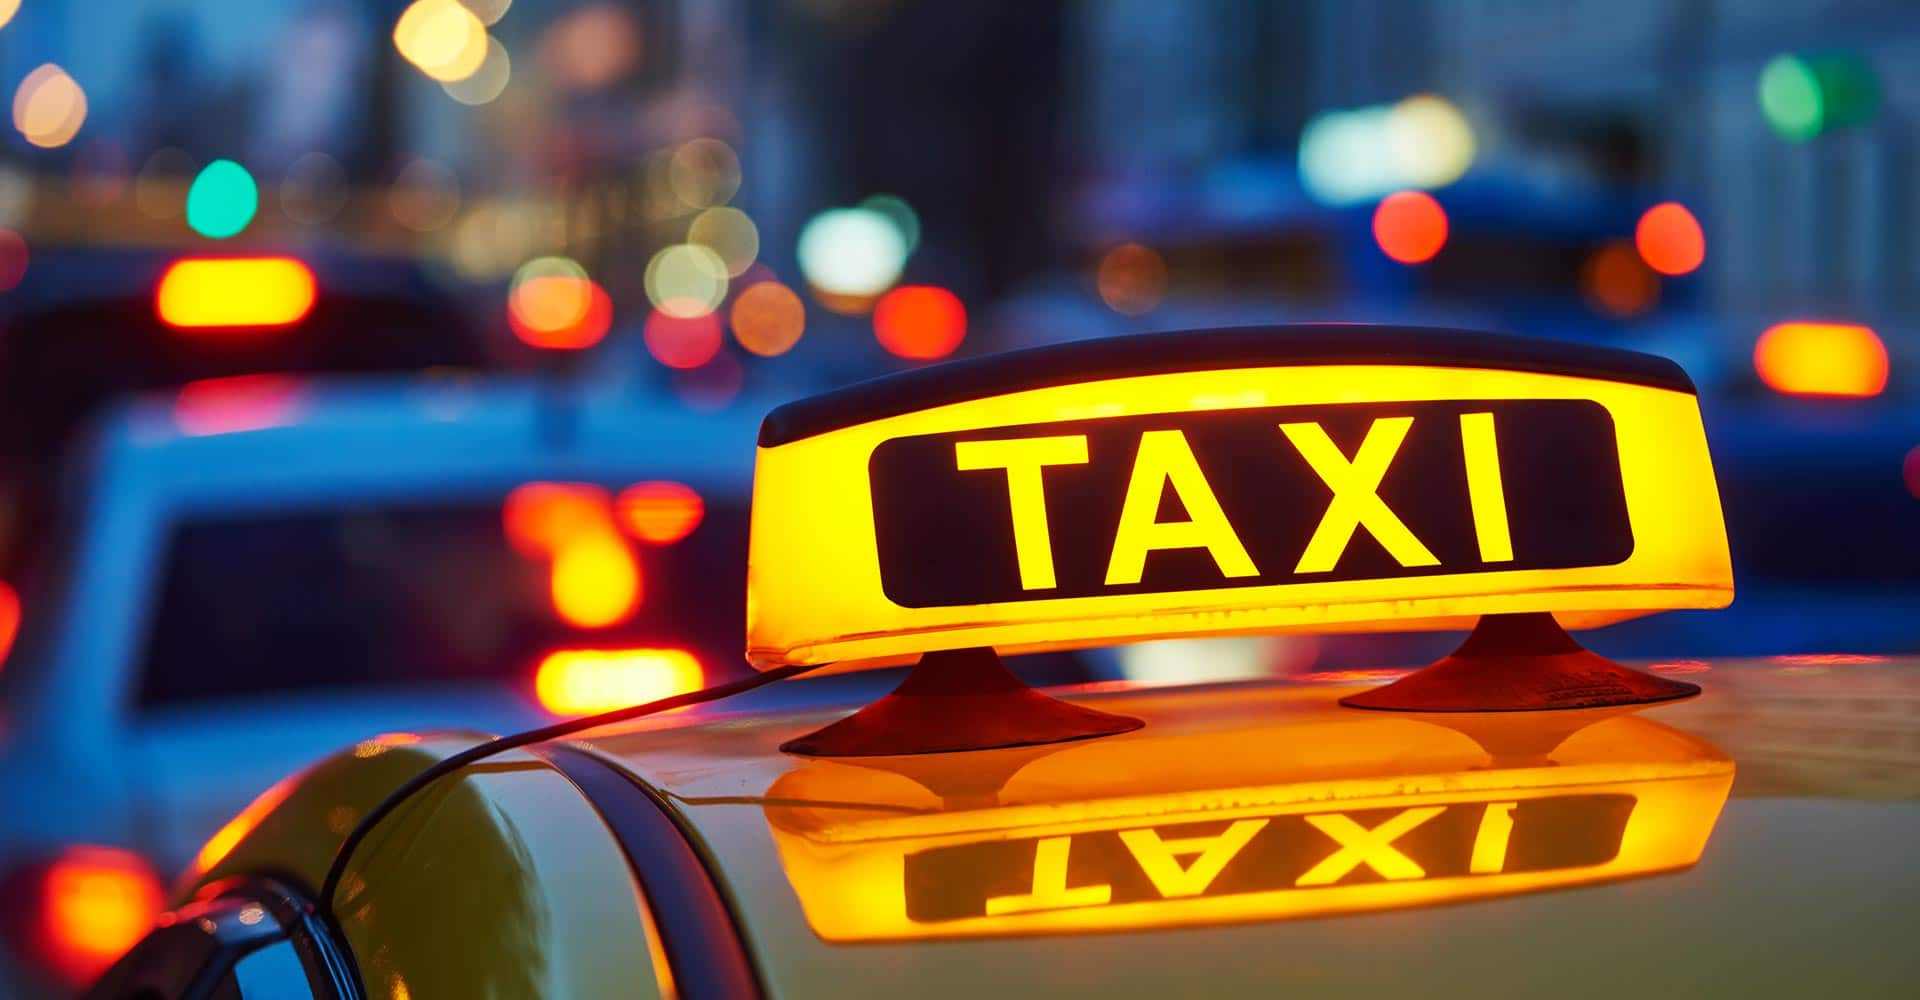 yellow taxi sign on cab car at evening or night in the city street